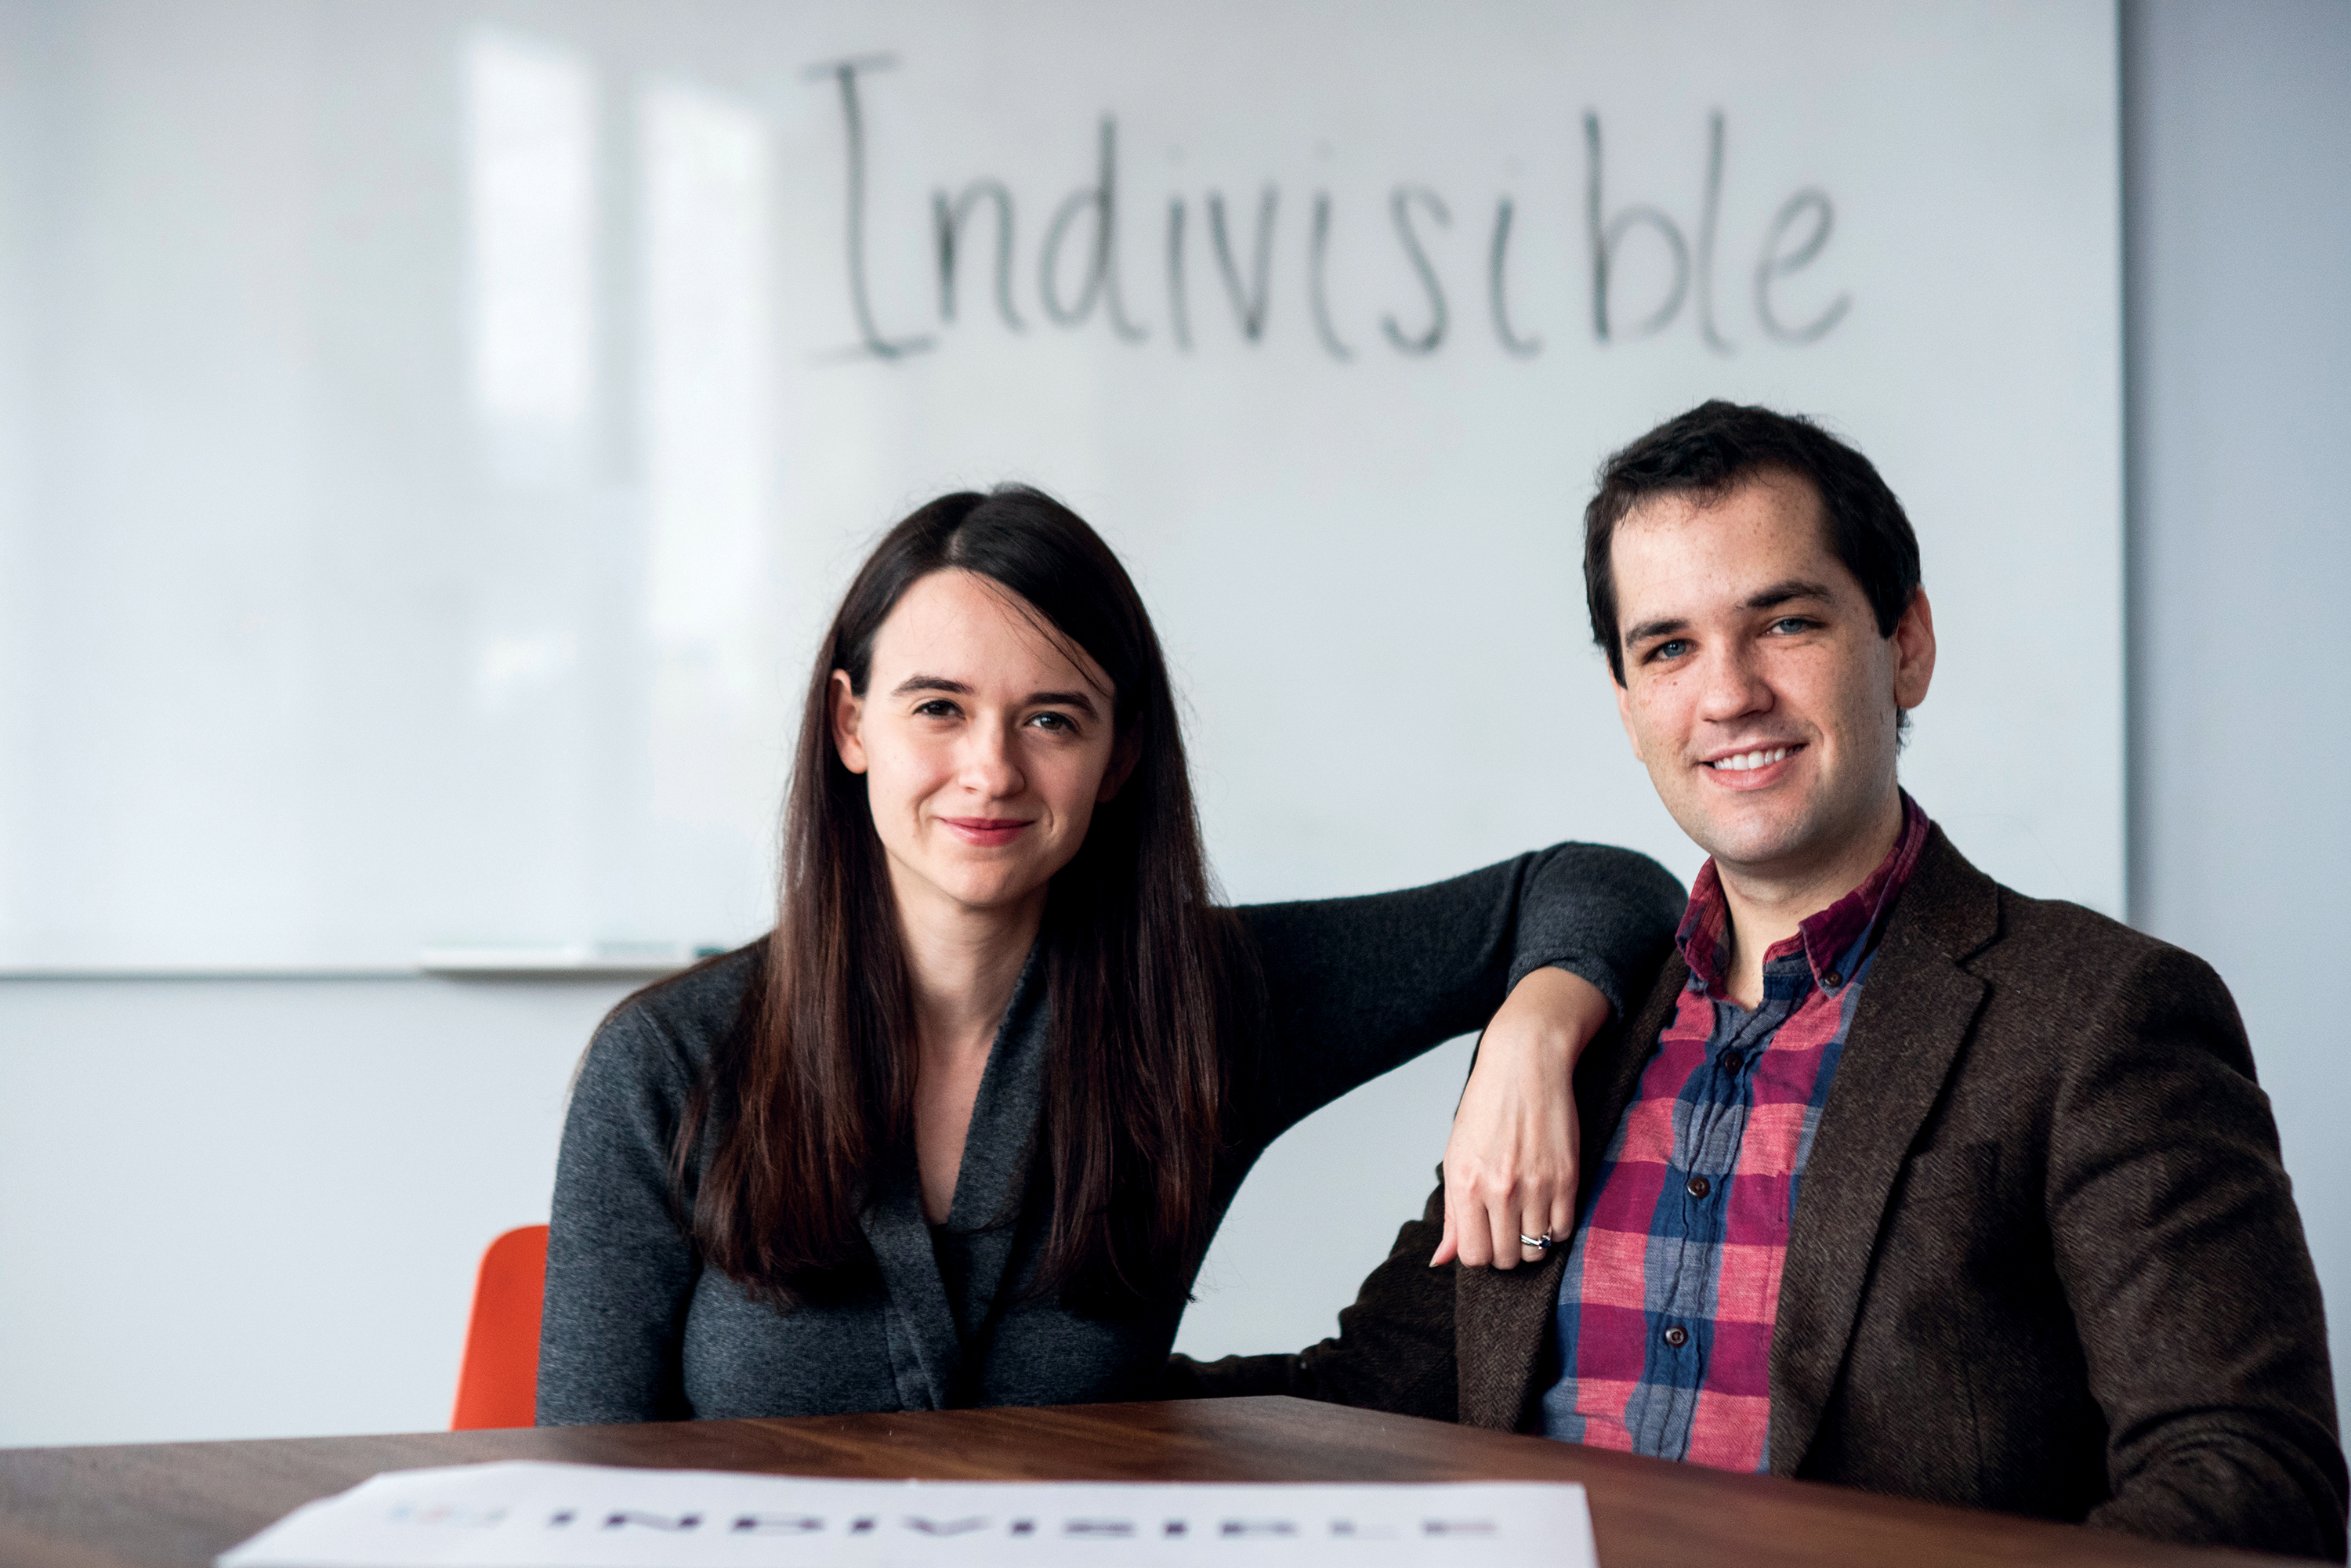 UNITED STATES - JANUARY 24: Leah Greenberg and Ezra Levin, founders of Indivisible, on Thursday, Jan. 24, 2019. (Photo By Bill Clark/CQ Roll Call)